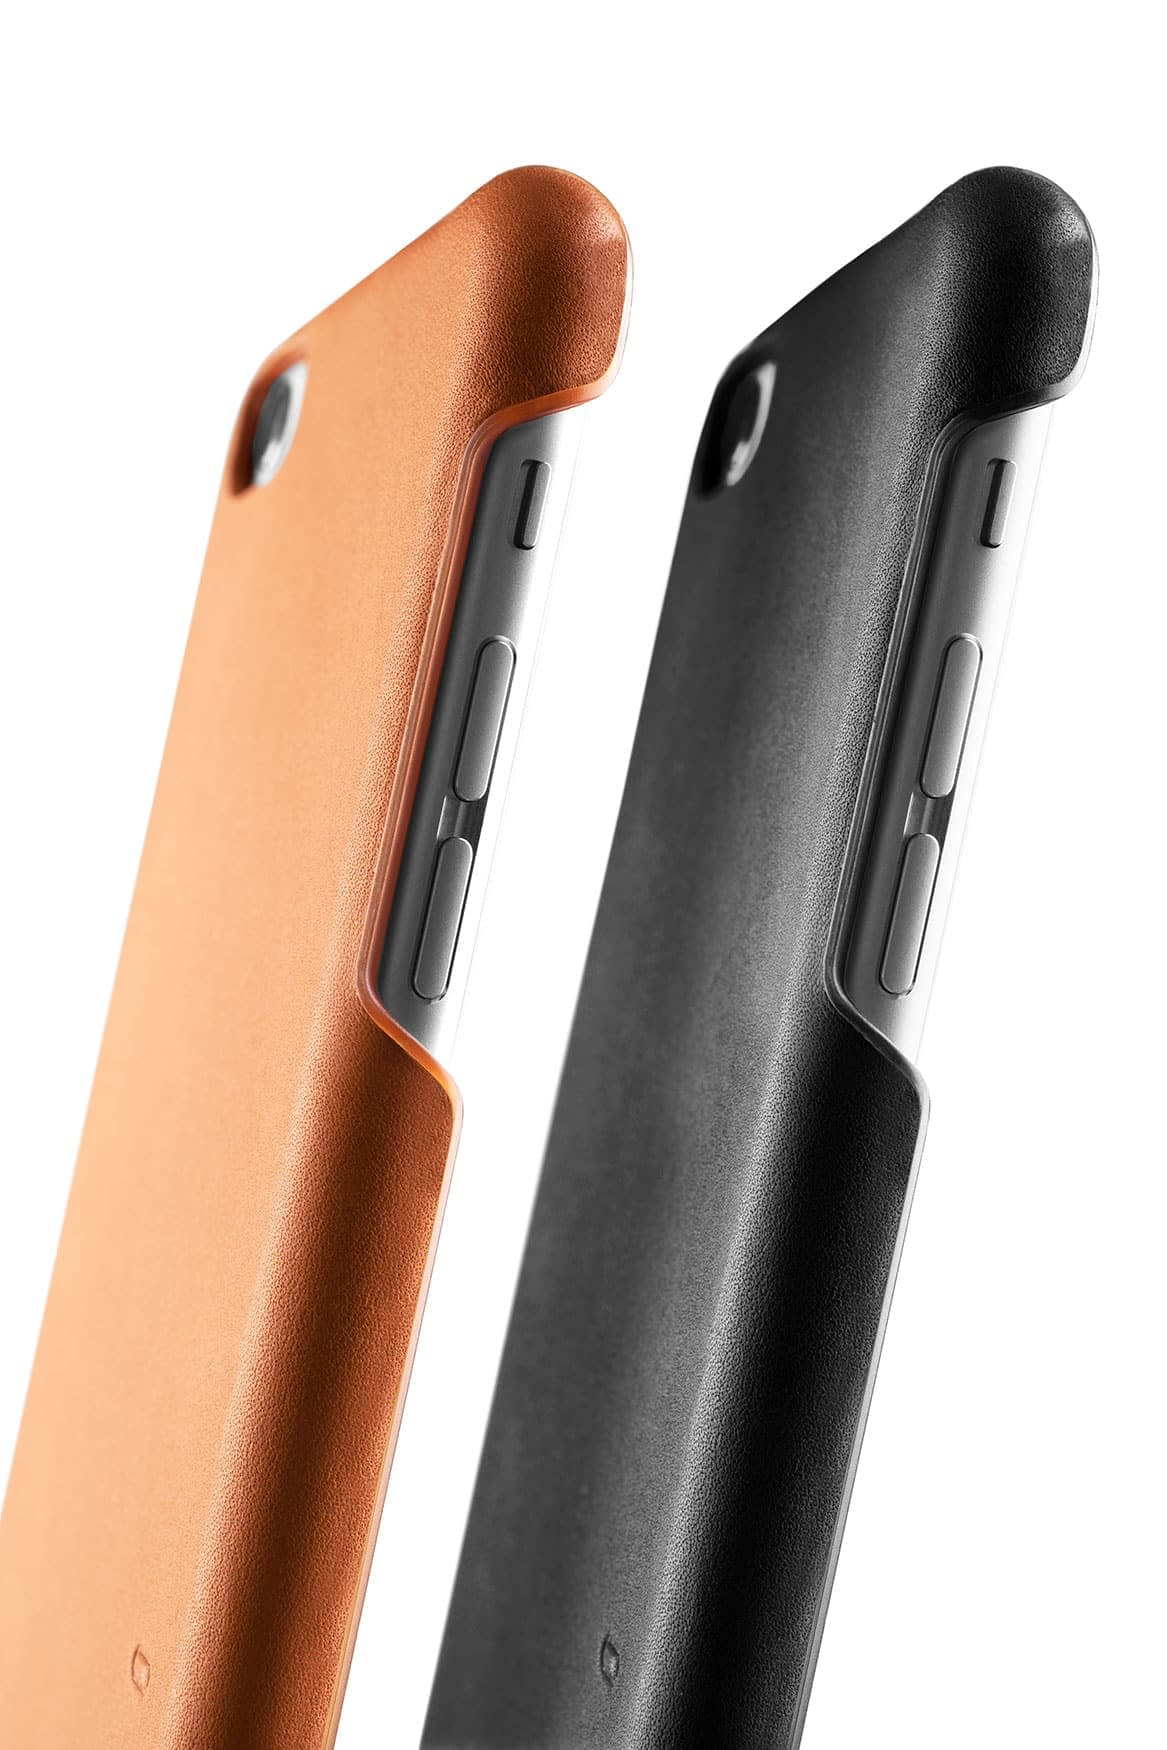 Leather Case for iPhone 6s Plus Tan 016 1